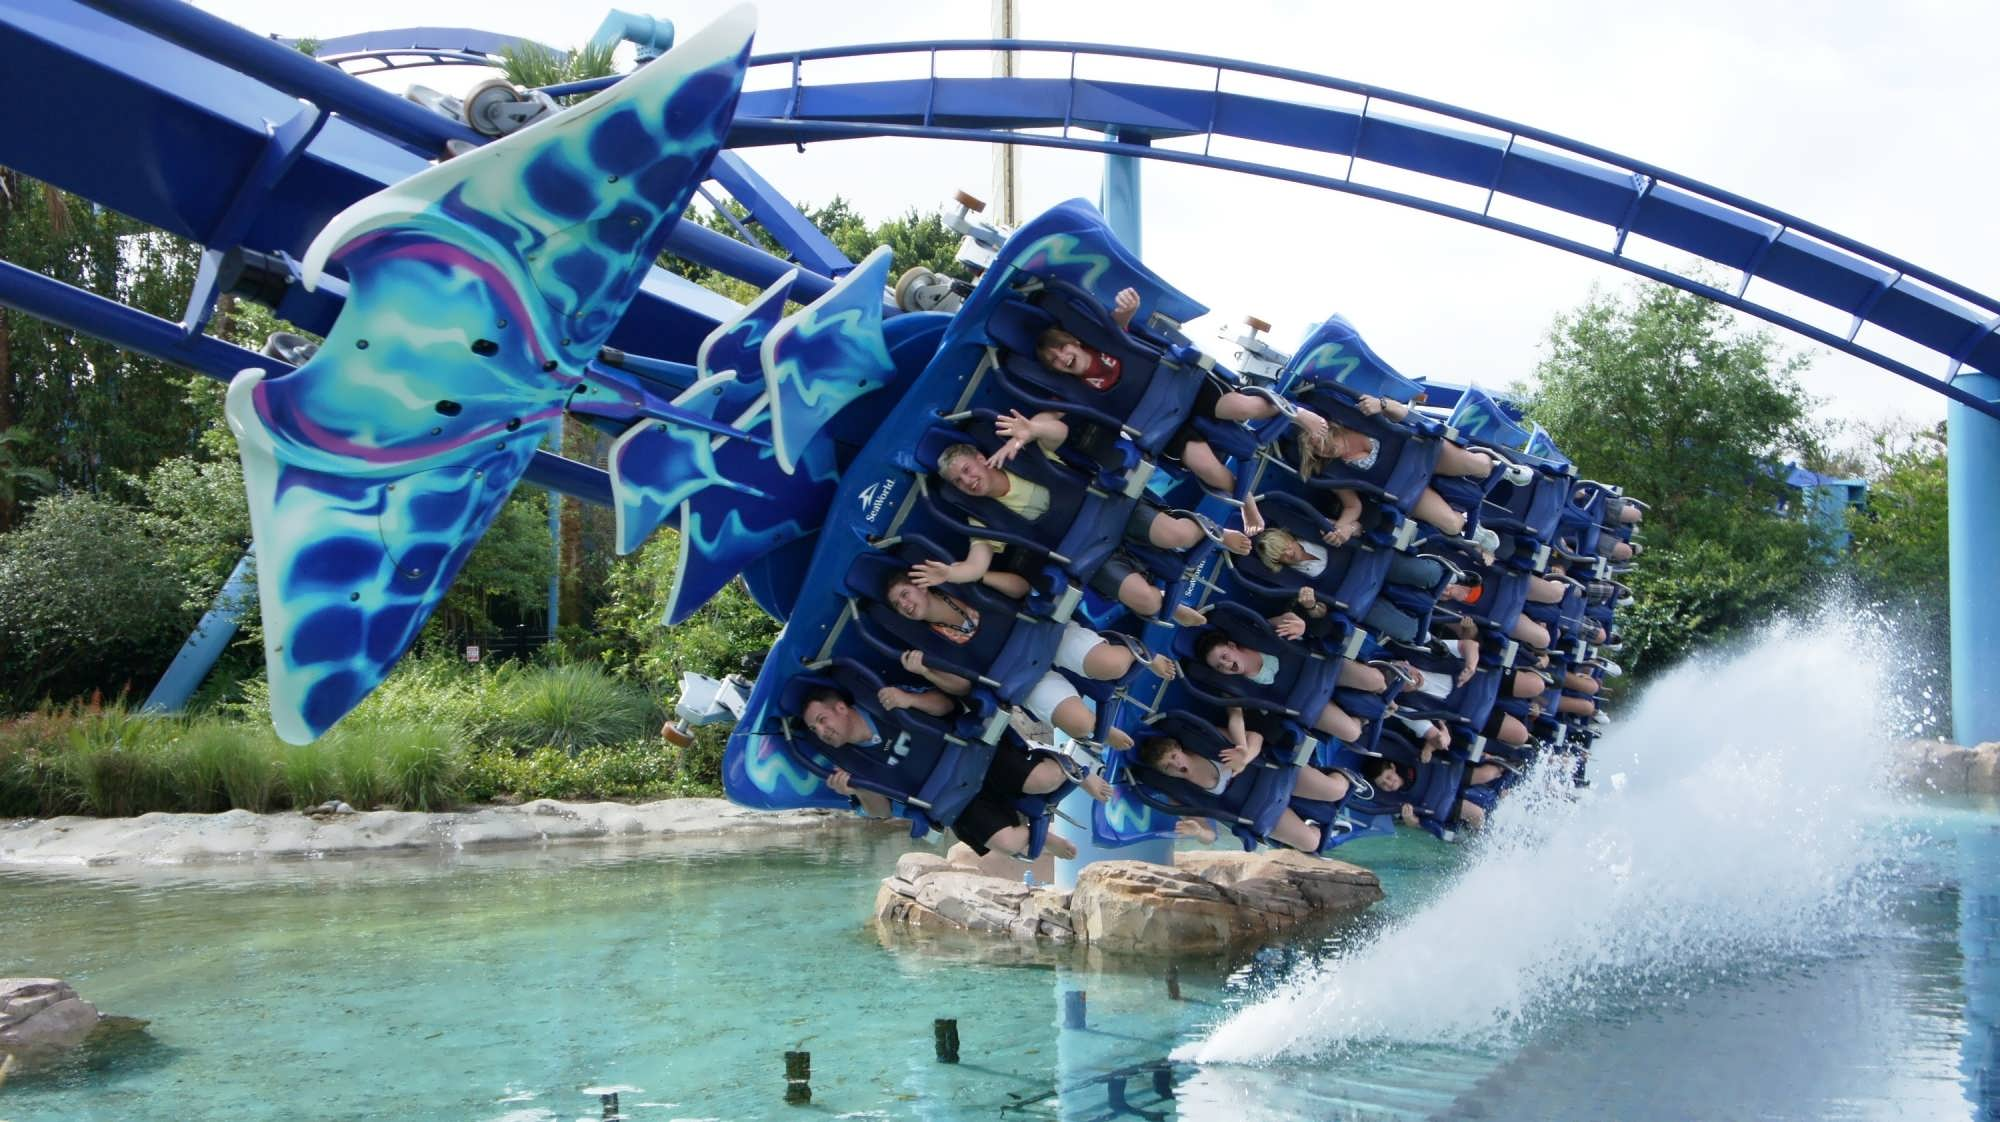 Mall Of Georgia >> SeaWorld Orlando: Fun, refreshing and a thrill for all ages